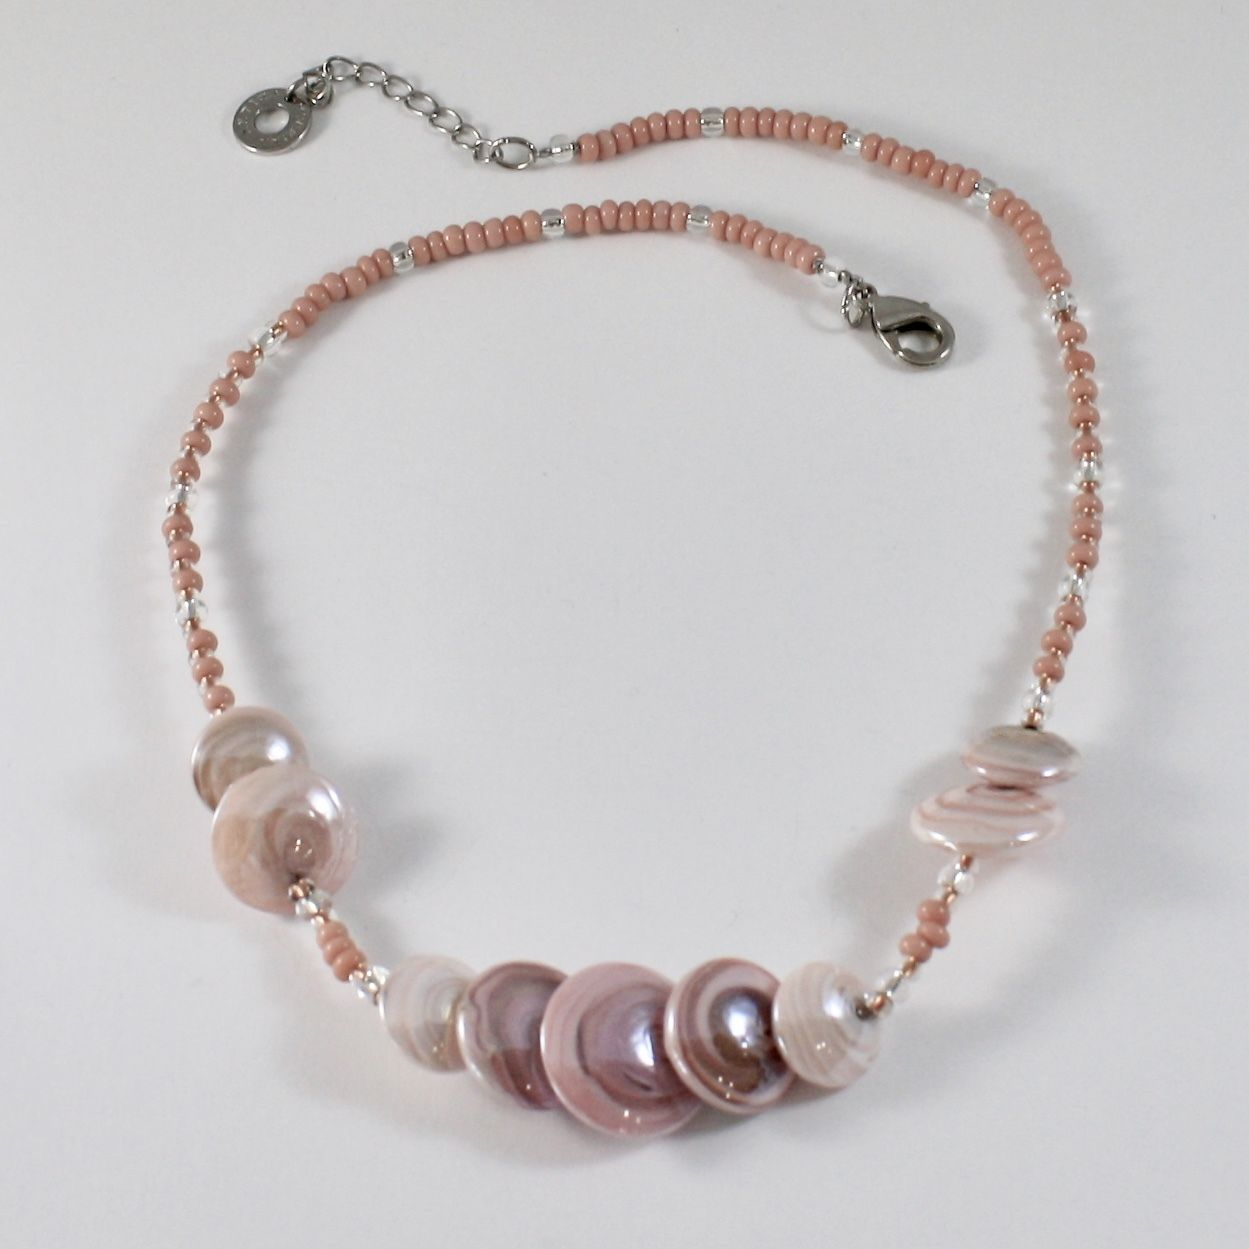 NECKLACE ANTICA MURRINA VENEZIA WITH MURANO GLASS DISC PINK CO961A03